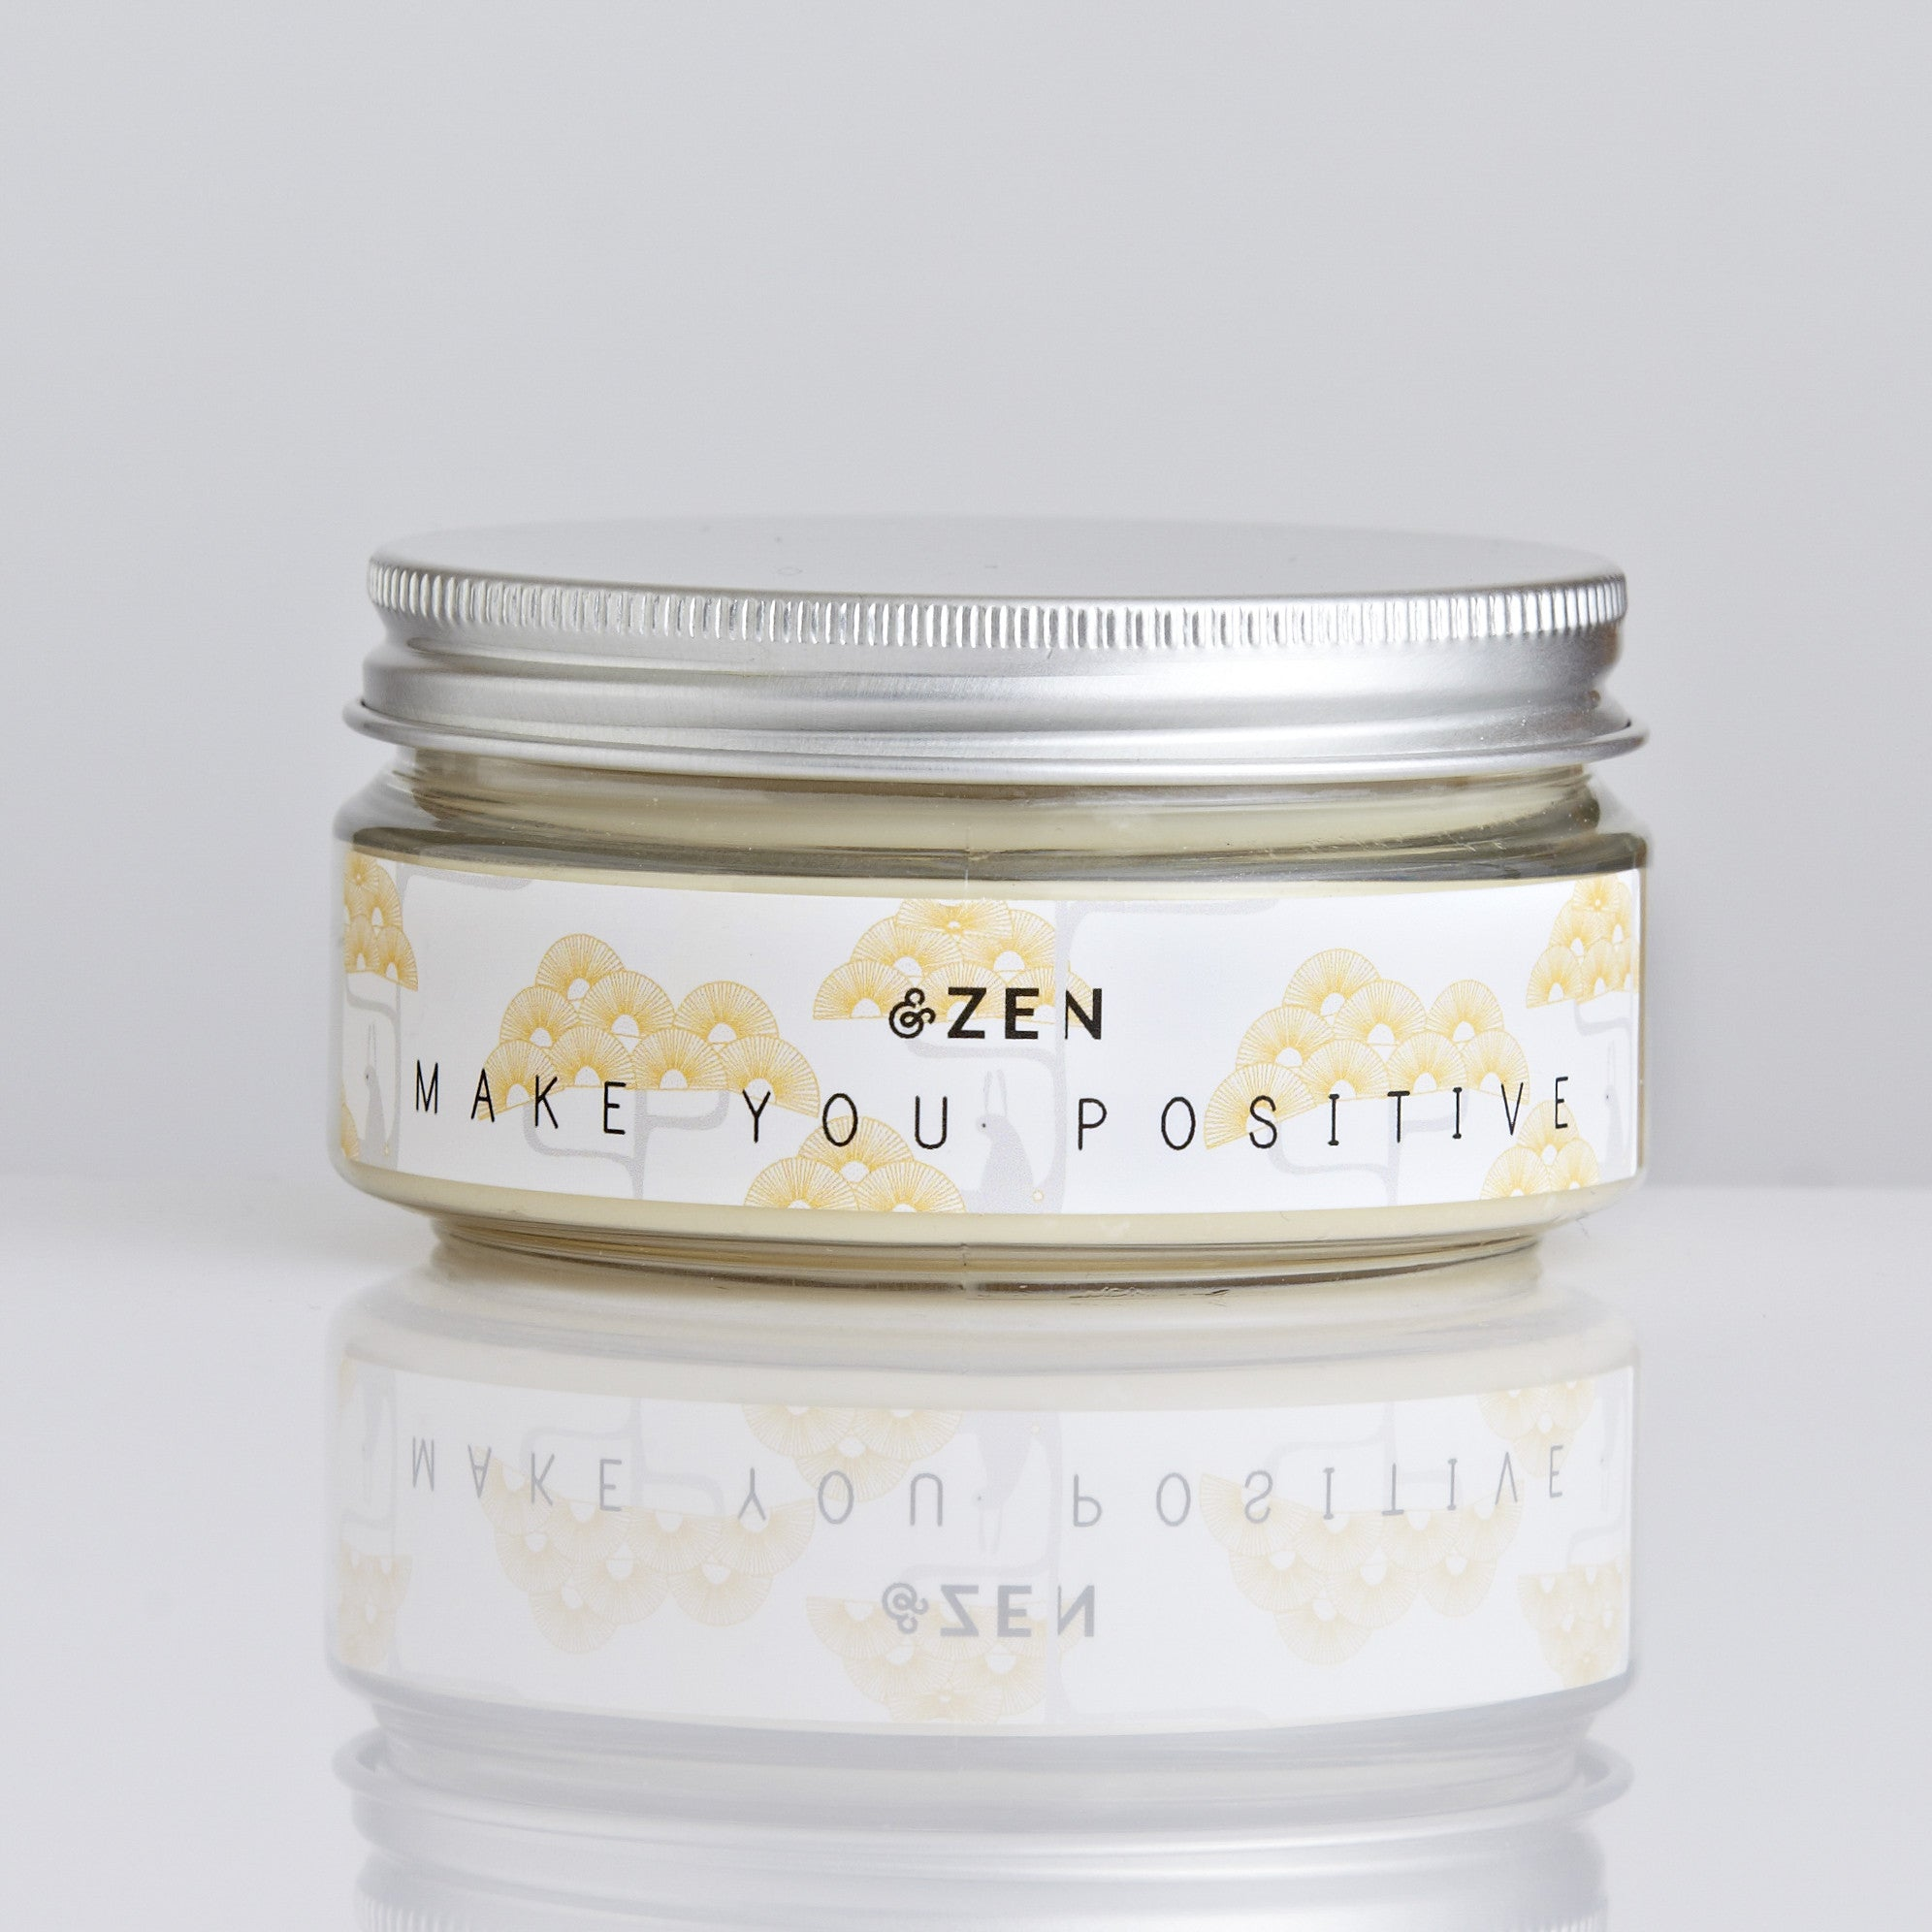 Travel Candle - Make You Positive